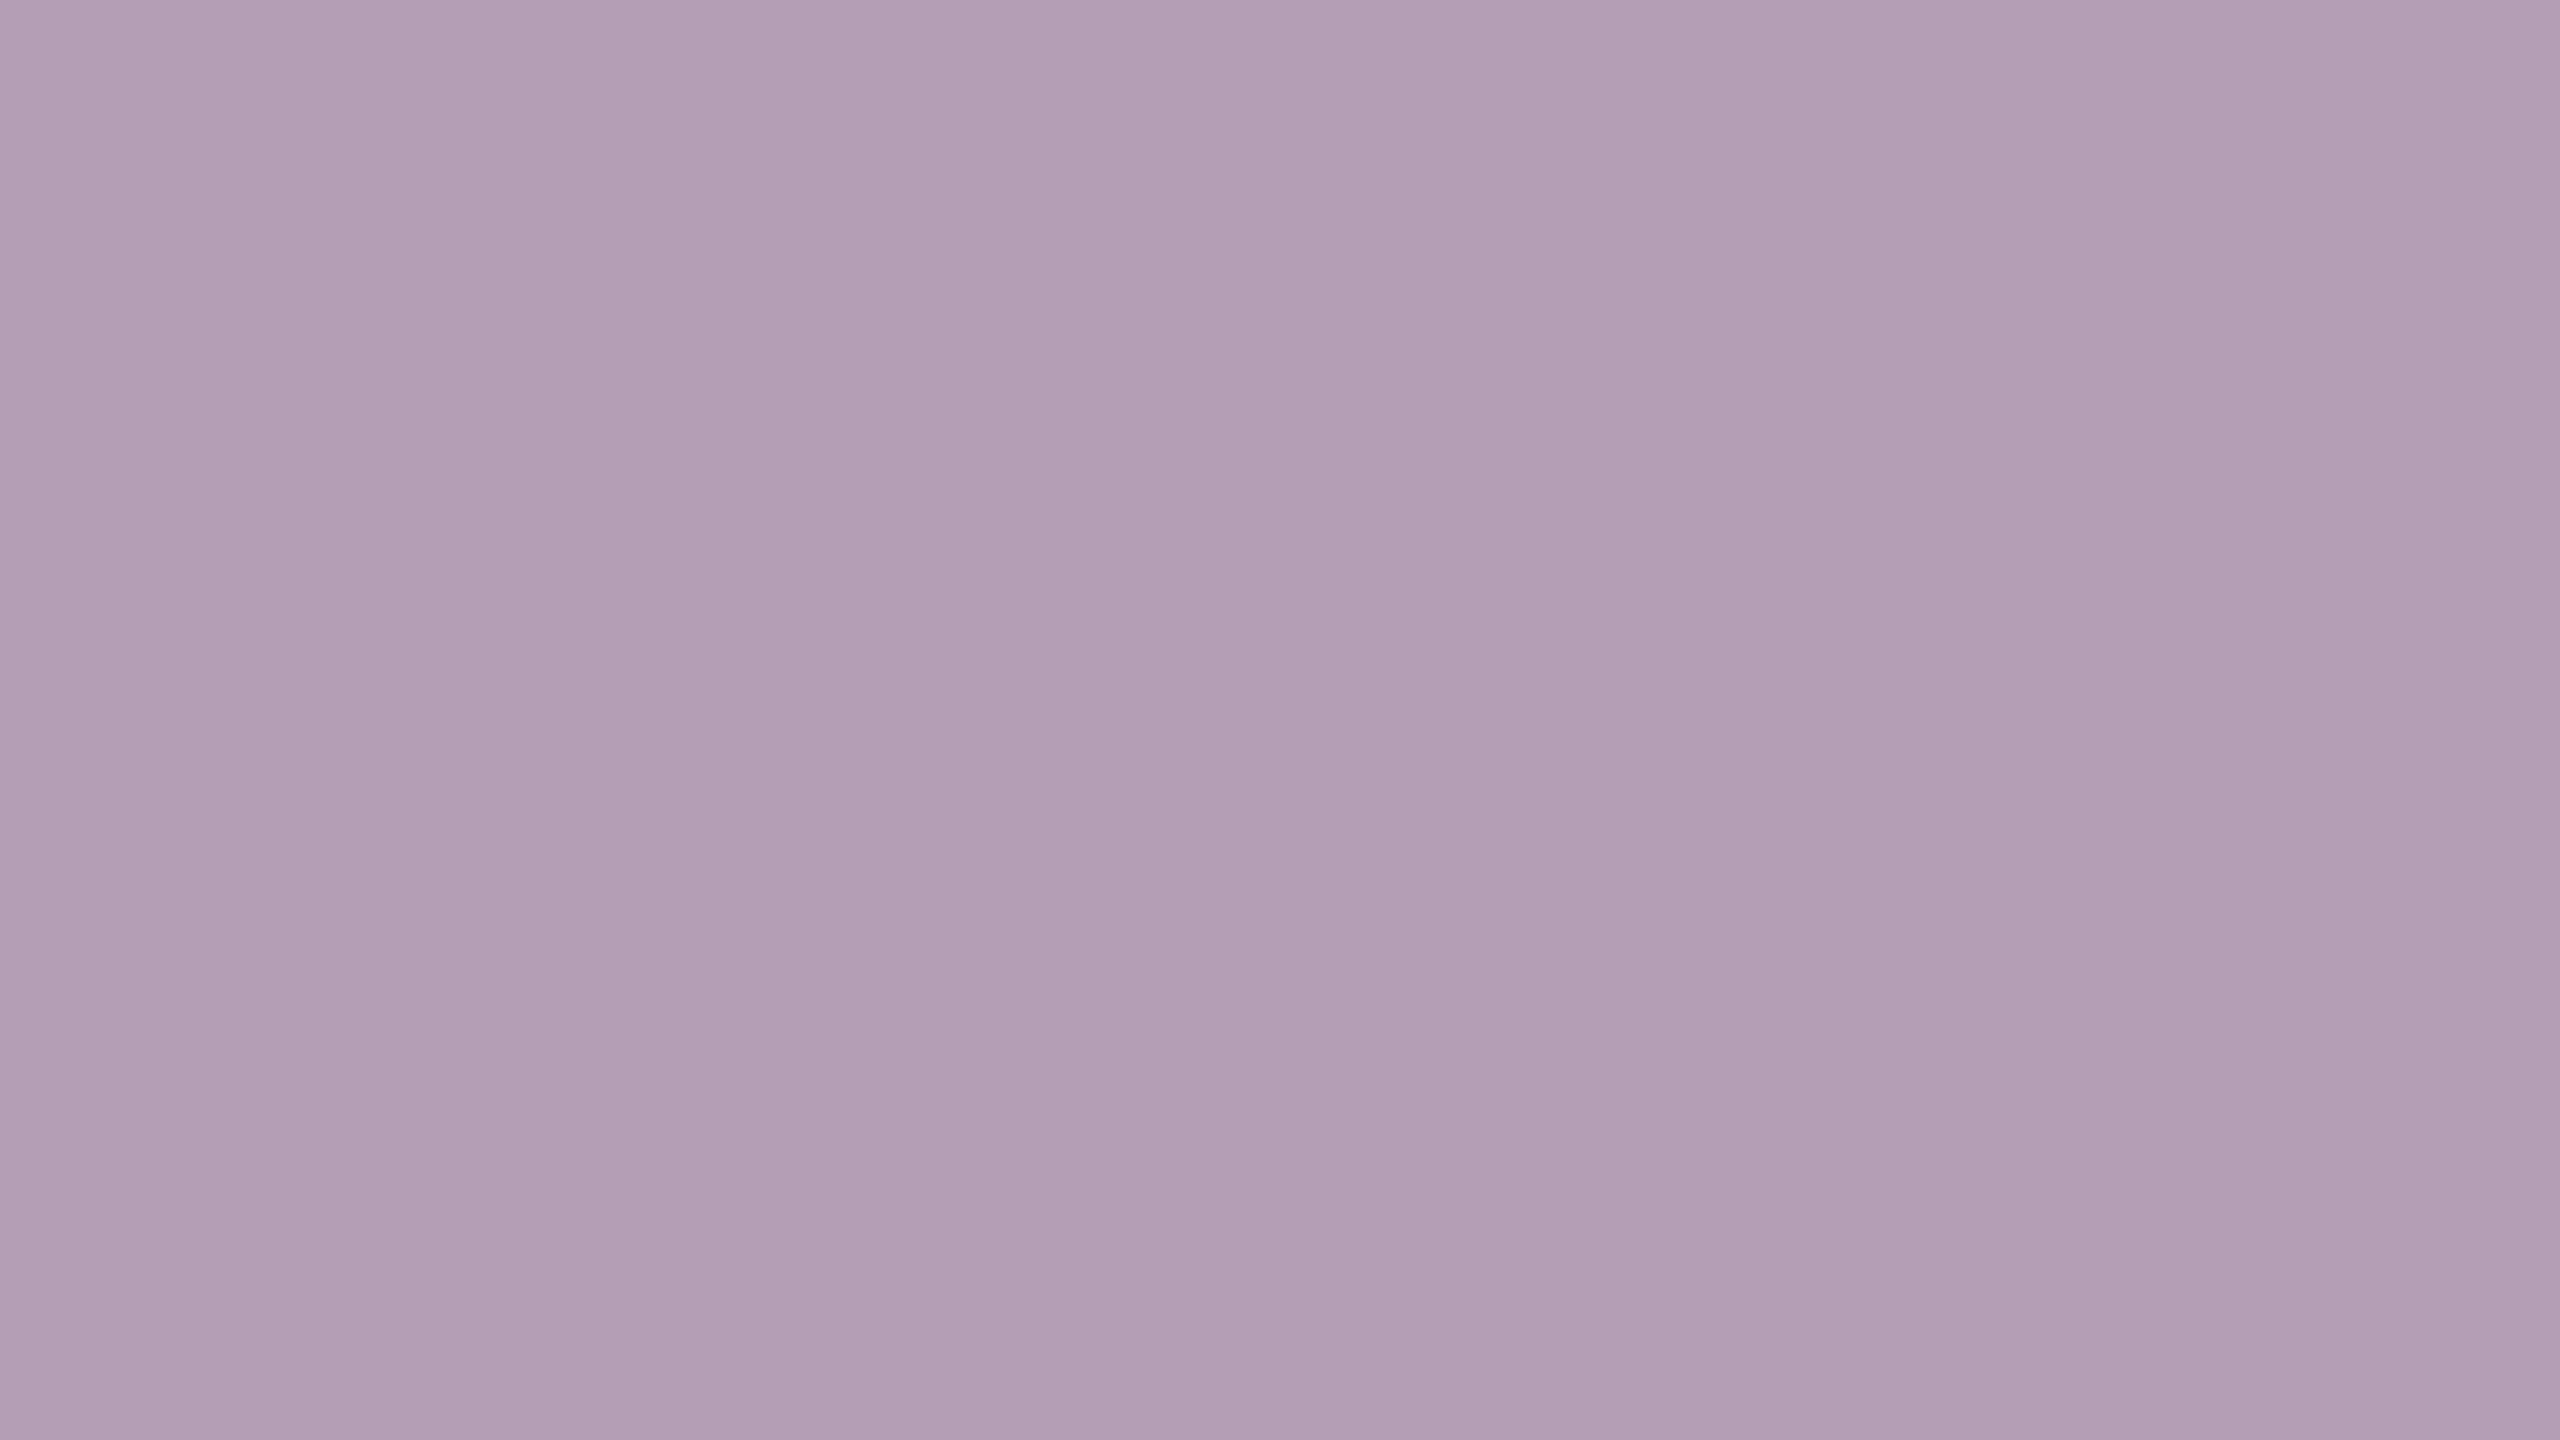 2560x1440 Pastel Purple Solid Color Background for solid pastel purple background  51ane